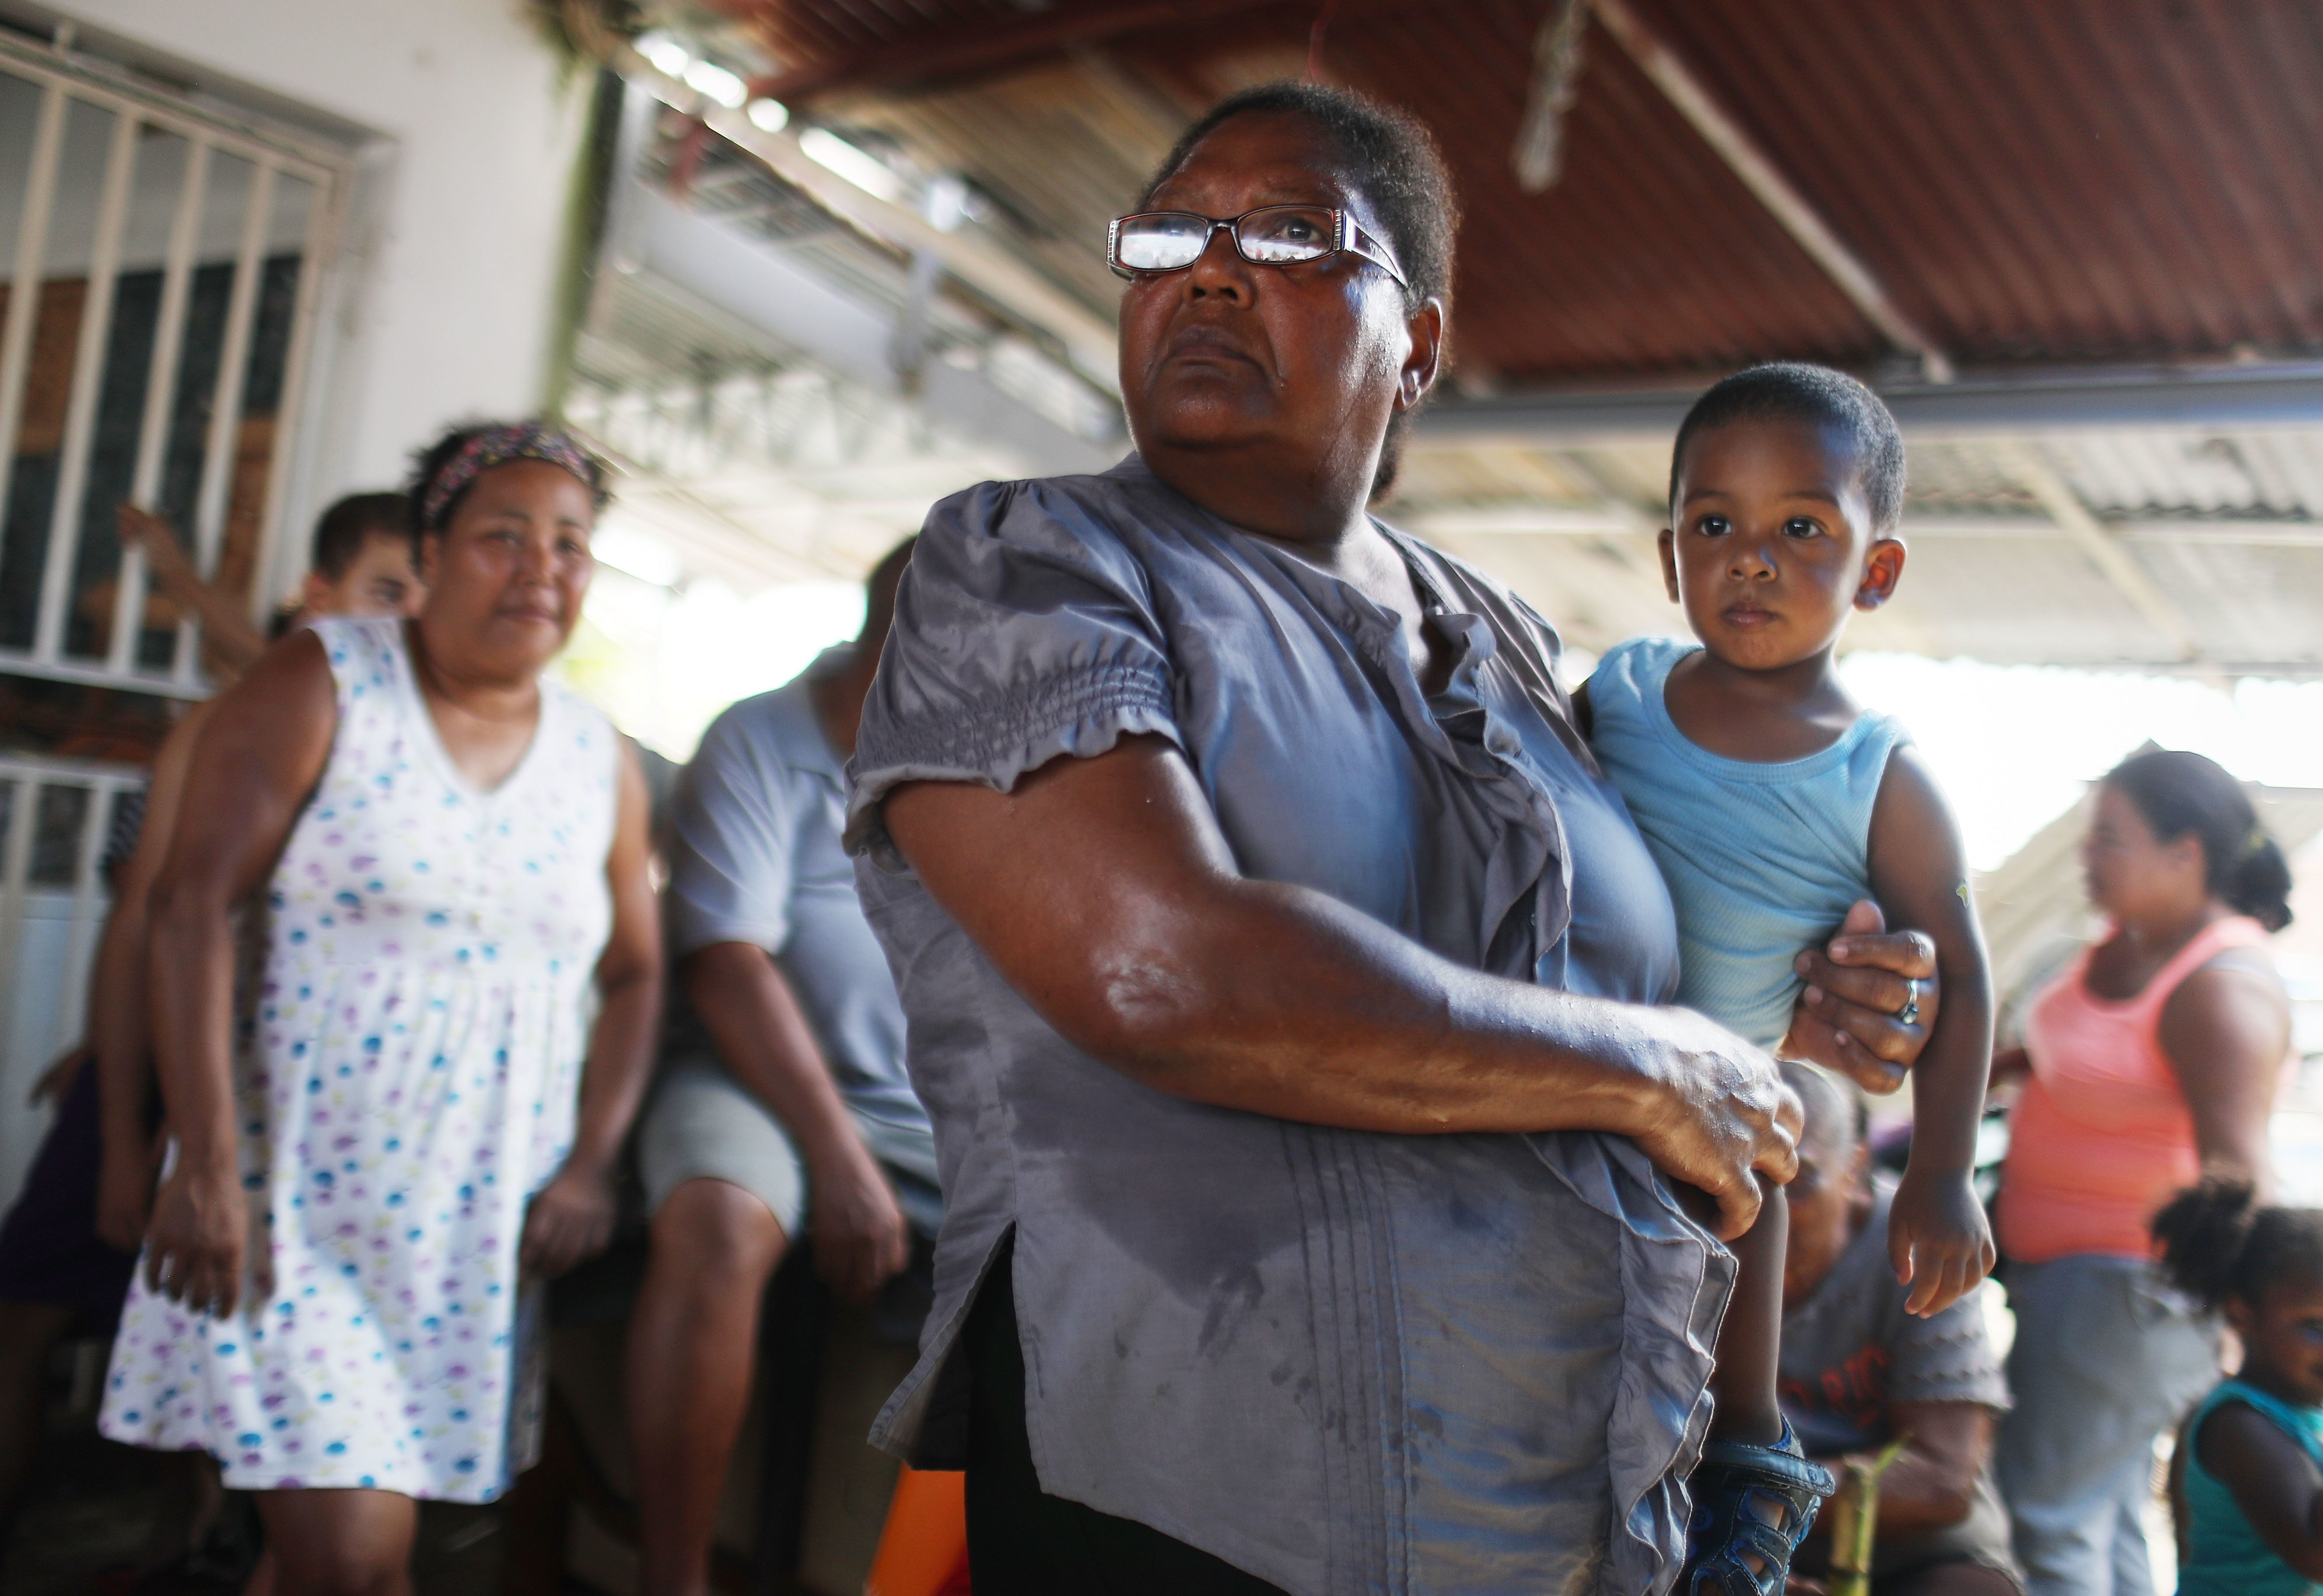 SAN ISIDRO, PUERTO RICO - OCTOBER 17:  Residents wait in the shade for food and water aid, provided by FEMA, to arrive in a neighborhood without grid electricity or running water on October 17, 2017 in San Isidro, Puerto Rico. The food and water delivery mission included U.S. Army, U.S. Coast Guard and Puerto Rico Hacienda forces. Residents said this was the first official governmental delivery of food and water to the community, nearly four weeks after the hurricane hit. Puerto Rico is suffering shortages of food and water in areas and only 17.7 percent of grid electricity has been restored. Puerto Rico experienced widespread damage including most of the electrical, gas and water grid as well as agriculture after Hurricane Maria, a category 4 hurricane, swept through.  (Photo by Mario Tama/Getty Images)